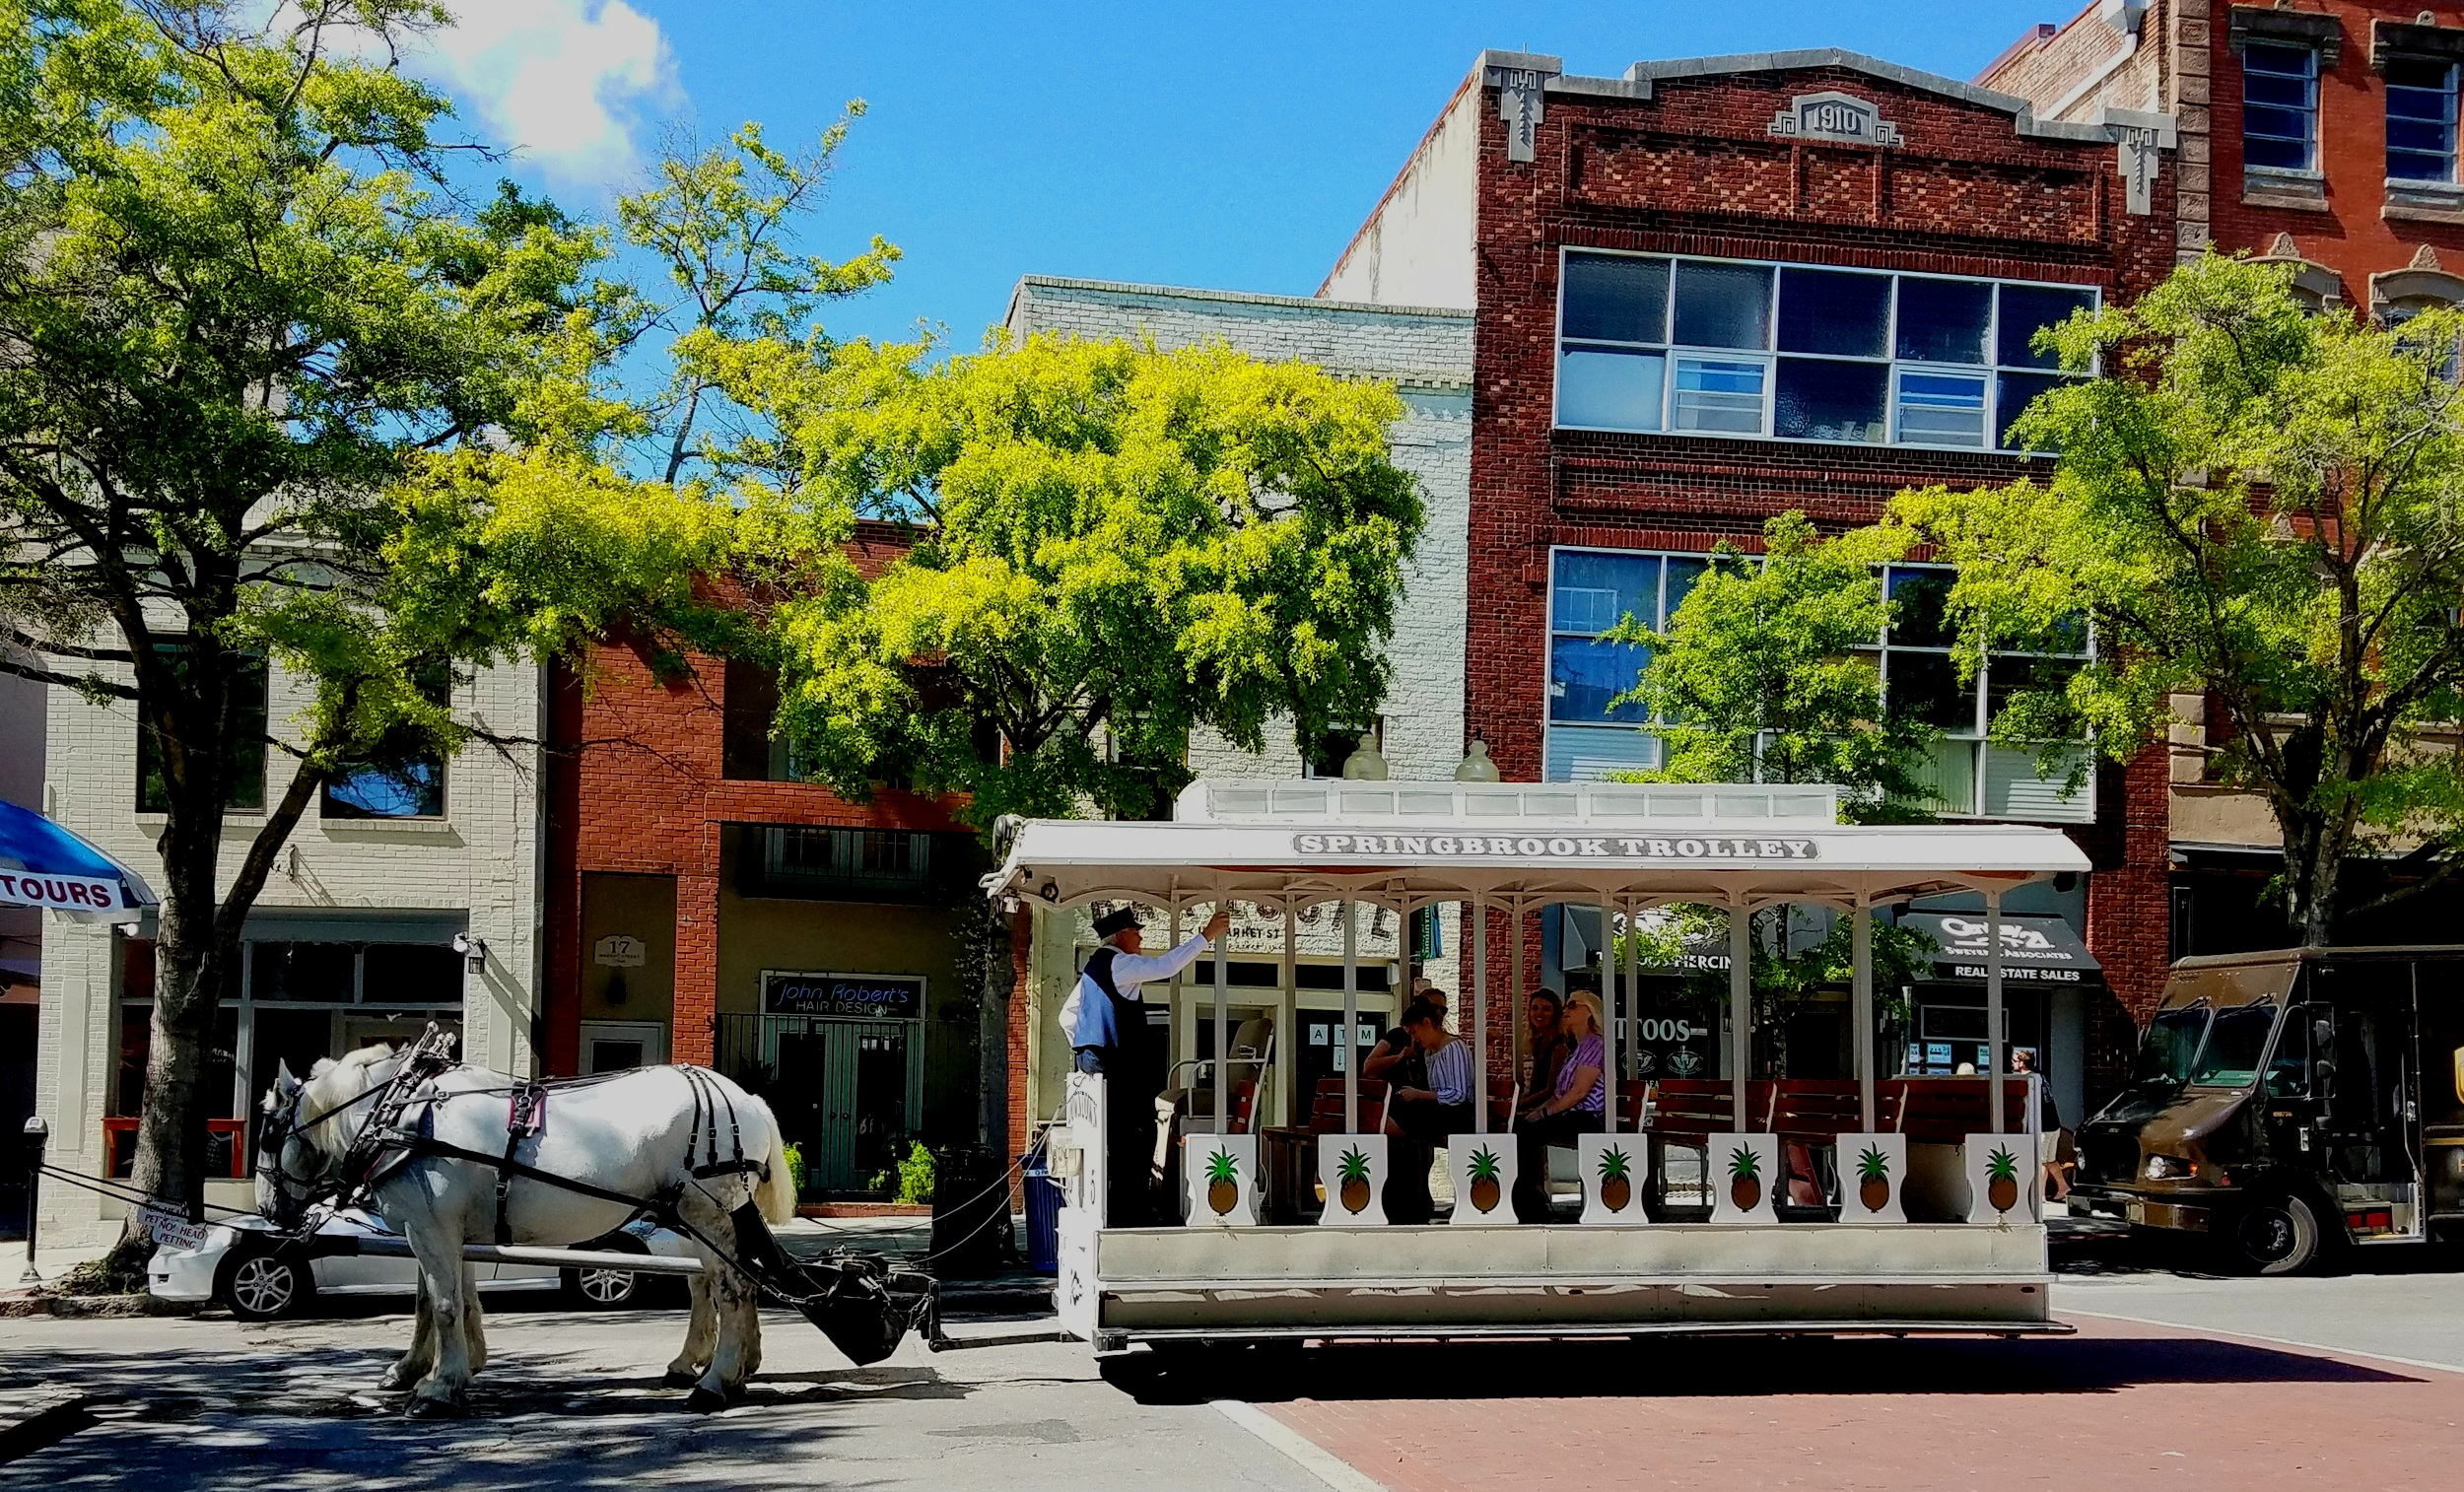 Sweet southern horse trolley rides in Wilmington NC…look at those pineapples!